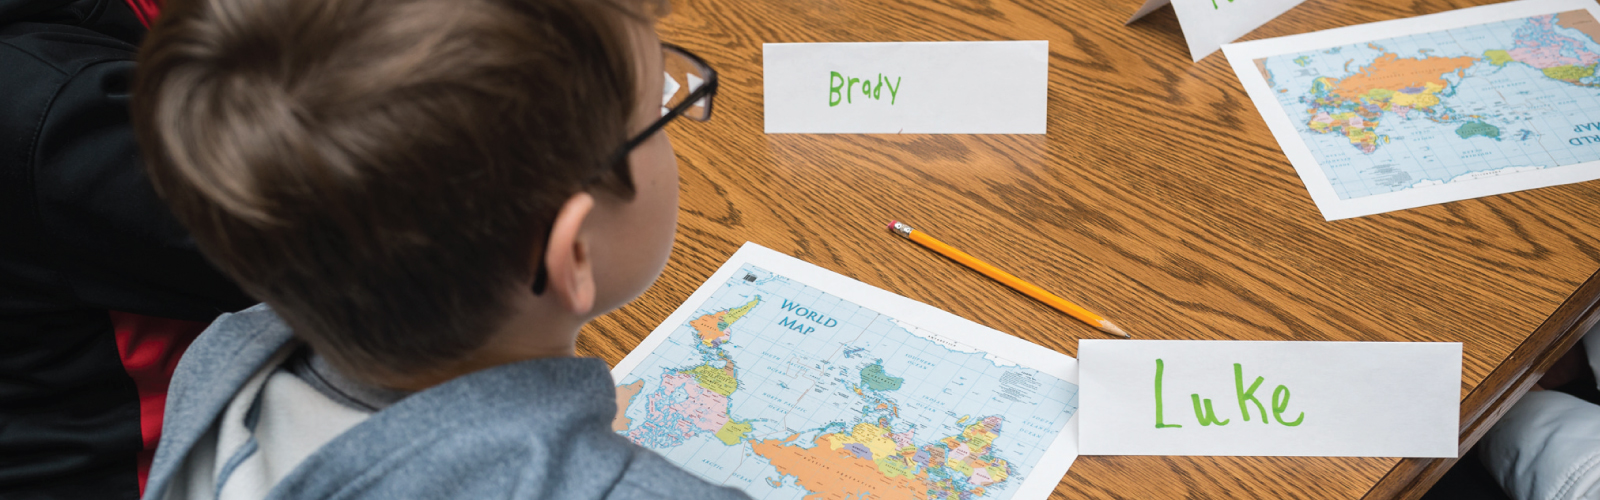 Student at a wood table with a world map in front of him